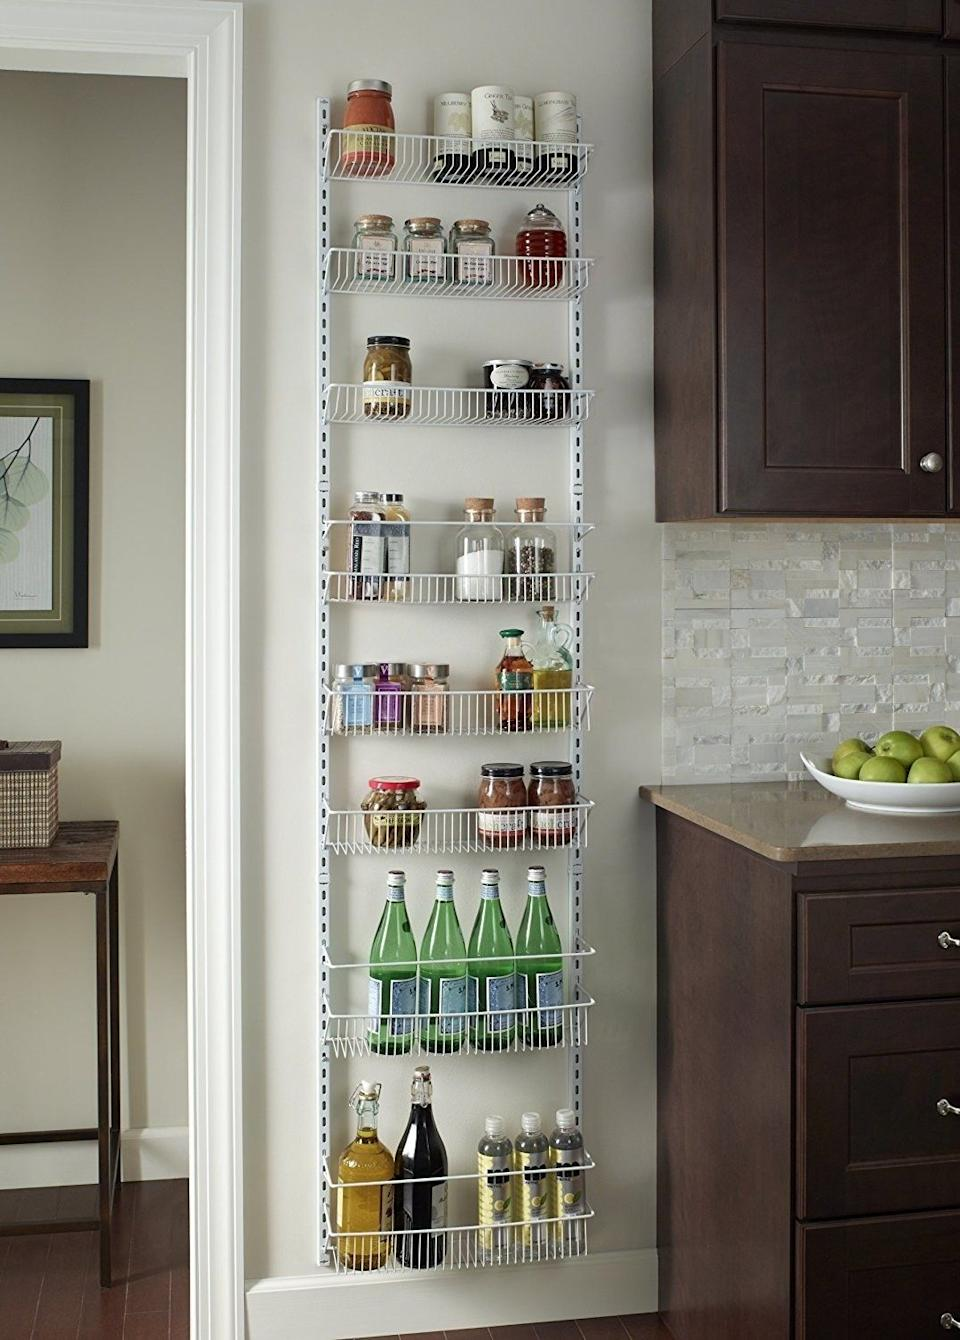 """No need to """"rack""""<i></i>your brain over how to store food without a pantry. This turns a wall into a place to store all your cans and jars.<br /><br /><strong>Promising review:</strong>""""This thing is freaking awesome!<strong>It is so sturdy and can hold some really heavy stuff!</strong>I used the door hooks to hang it on the back of a door. A single person can assemble and mount this easily. I didn't end up using all of the shelves since some of the items I need to store are large and heavy — I liked having the option of leaving them out and just using as many as I needed. This is a great product and I will buy it again for other closets and storage areas."""" —<a href=""""https://amzn.to/3uYx5PV"""" target=""""_blank"""" rel=""""nofollow noopener noreferrer"""" data-skimlinks-tracking=""""5902331"""" data-vars-affiliate=""""Amazon"""" data-vars-href=""""https://www.amazon.com/gp/profile/amzn1.account.AHSXW3KBYITABSL3T6GPB56EV3RQ?tag=bfmal-20&ascsubtag=5902331%2C32%2C37%2Cmobile_web%2C0%2C0%2C16540662"""" data-vars-keywords=""""cleaning"""" data-vars-link-id=""""16540662"""" data-vars-price="""""""" data-vars-product-id=""""16013316"""" data-vars-retailers=""""Amazon"""">Chimera</a><br /><br /><strong>Get it from Amazon for<a href=""""https://amzn.to/2RDYfx3"""" target=""""_blank"""" rel=""""nofollow noopener noreferrer"""" data-skimlinks-tracking=""""5902331"""" data-vars-affiliate=""""Amazon"""" data-vars-asin=""""B00D8OYUTM"""" data-vars-href=""""https://www.amazon.com/dp/B00D8OYUTM?tag=bfmal-20&ascsubtag=5902331%2C32%2C37%2Cmobile_web%2C0%2C0%2C16540681"""" data-vars-keywords=""""cleaning"""" data-vars-link-id=""""16540681"""" data-vars-price="""""""" data-vars-product-id=""""17912801"""" data-vars-product-img=""""https://m.media-amazon.com/images/I/31bg5sduOSL.jpg"""" data-vars-product-title=""""ClosetMaid 1233 Adjustable 8-Tier Wall and Door Rack, 77-Inch Height X 18-Inch Wide,white"""" data-vars-retailers=""""Amazon"""">$33.99</a>.</strong>"""